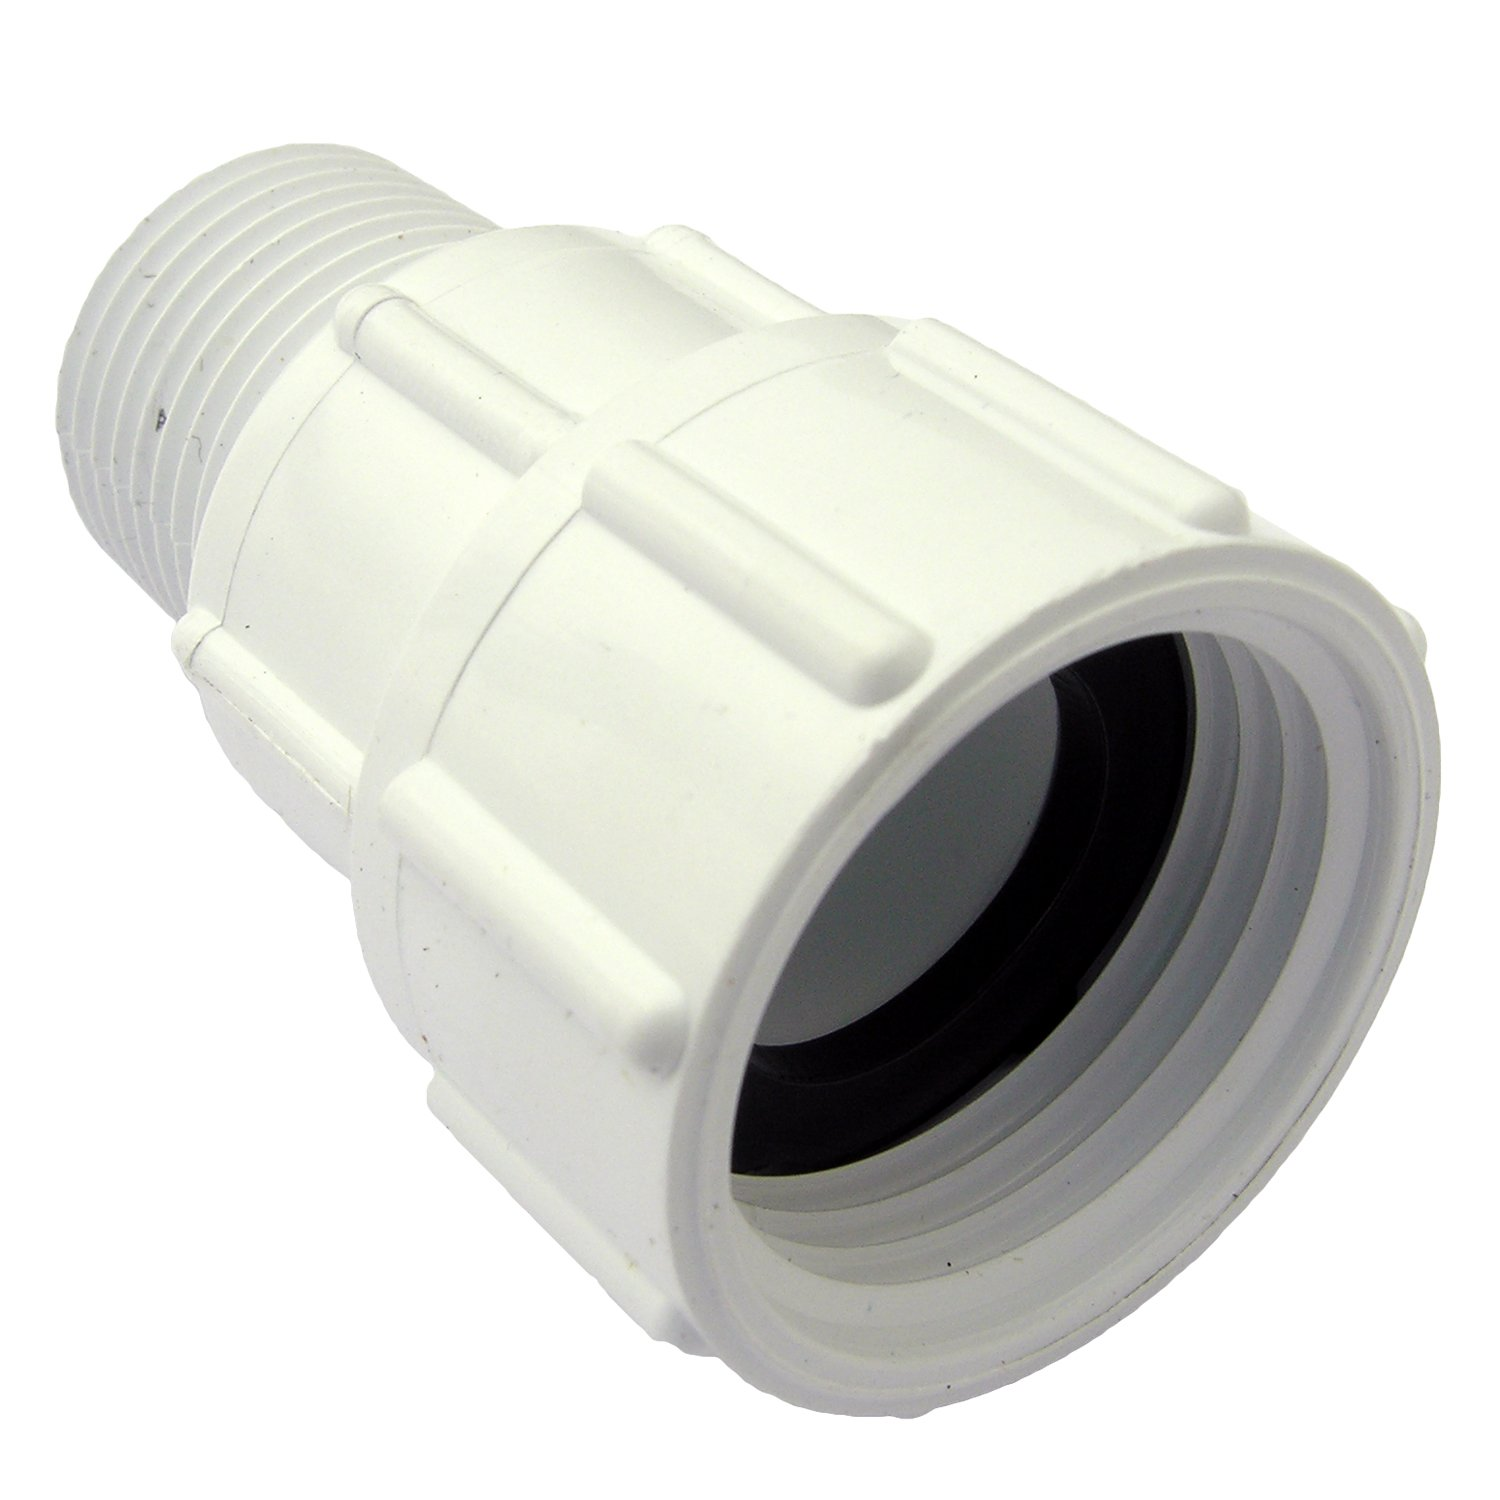 Off lasco pvc swivel hose adapter with inch